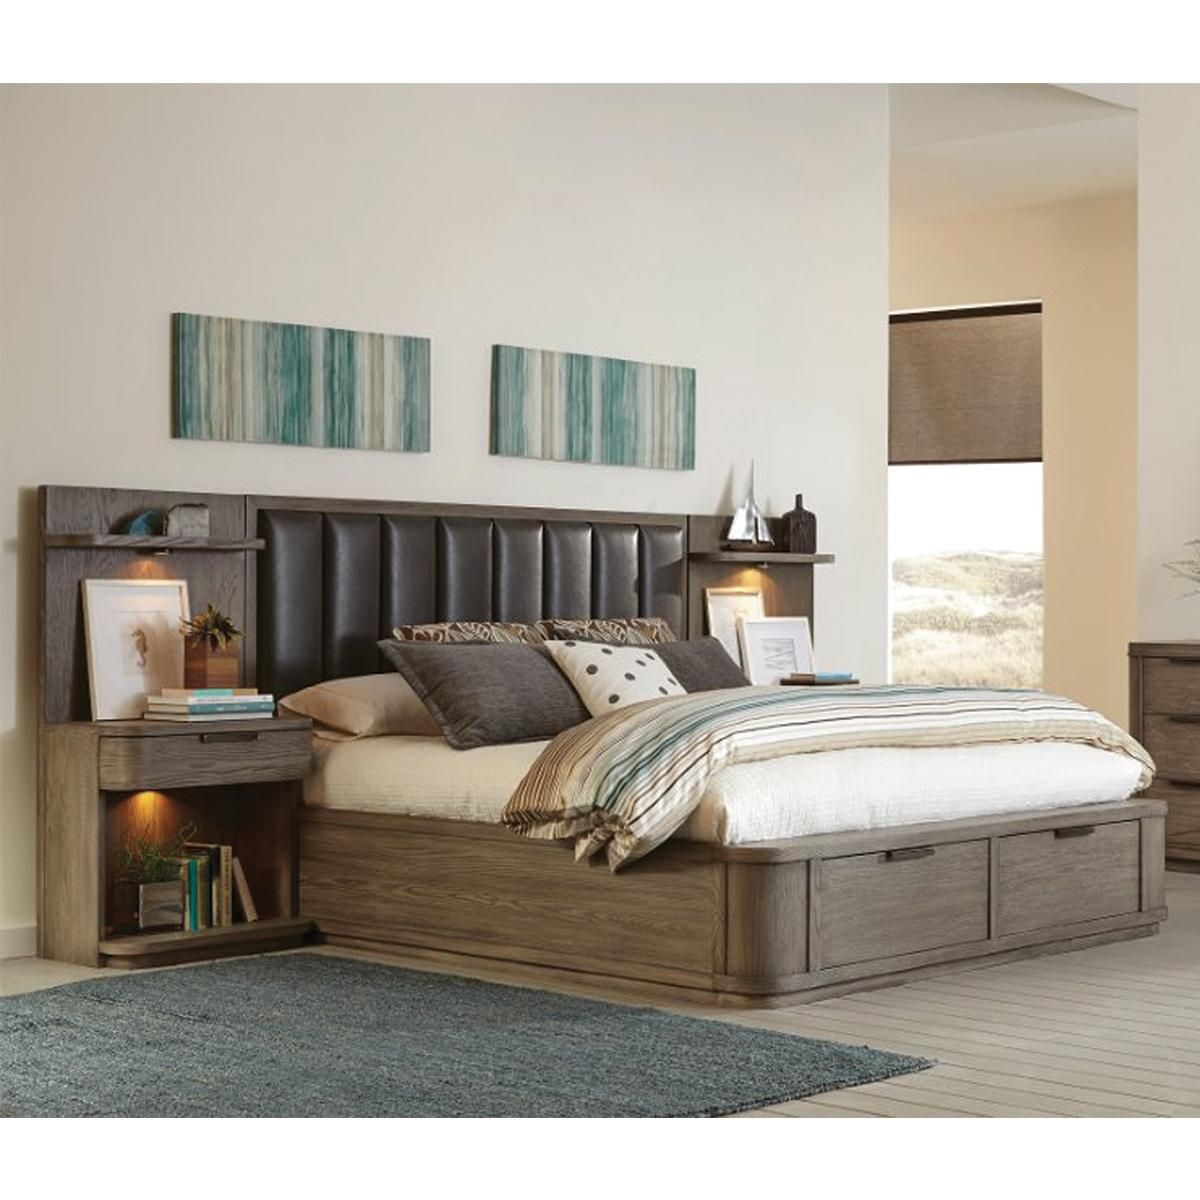 Shannon Hills Precision 3 Piece King Bedroom Set in Gray